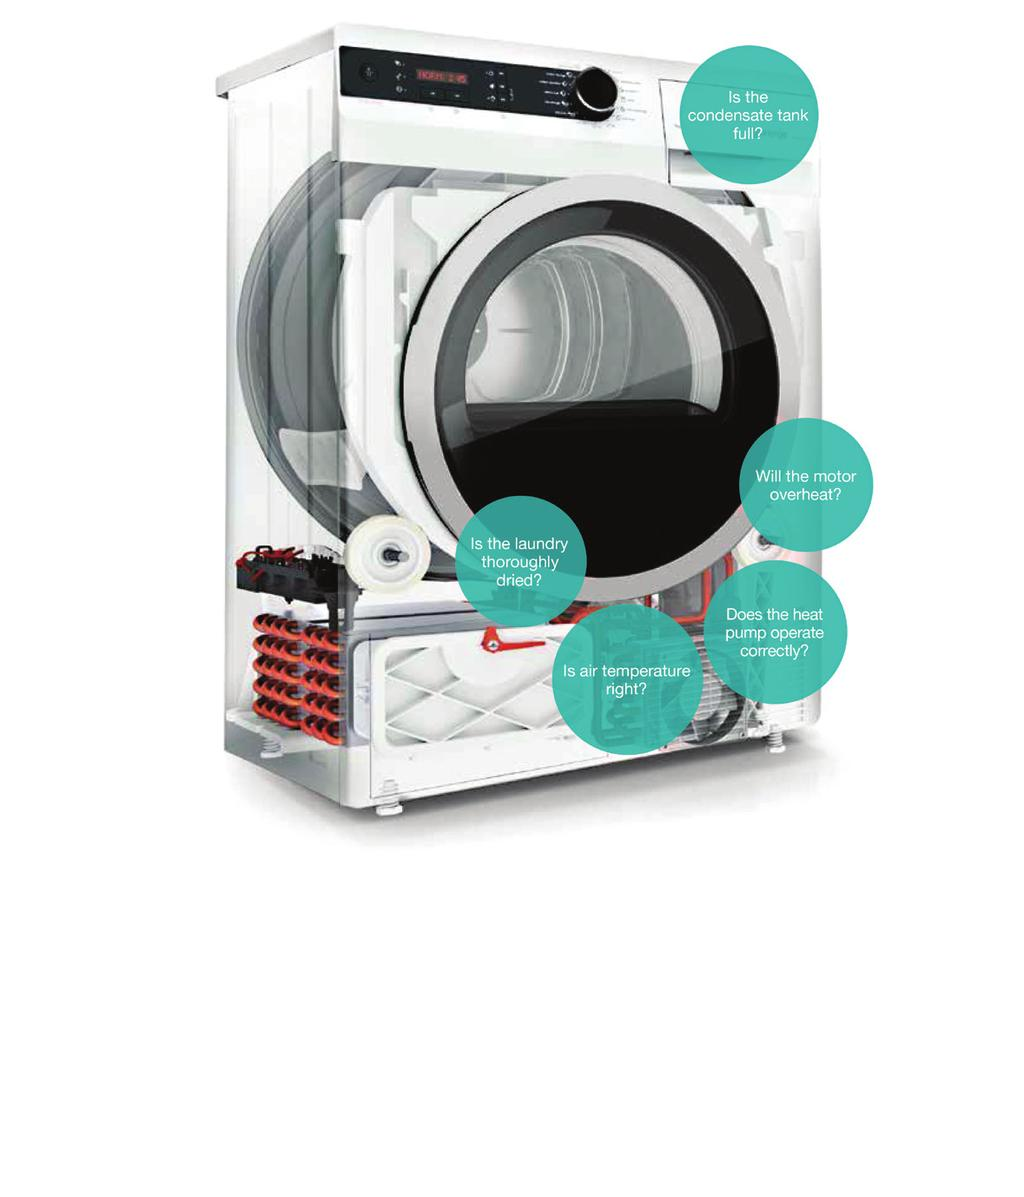 One For All You Are Sensocare Washing Machines And Tumble Dryers Pdf Front Load Dryer Furthermore Whirlpool Thermostat Wiring Diagram 20 I Dare To Compare More Laundry Less Energy Sensor Iq Technology